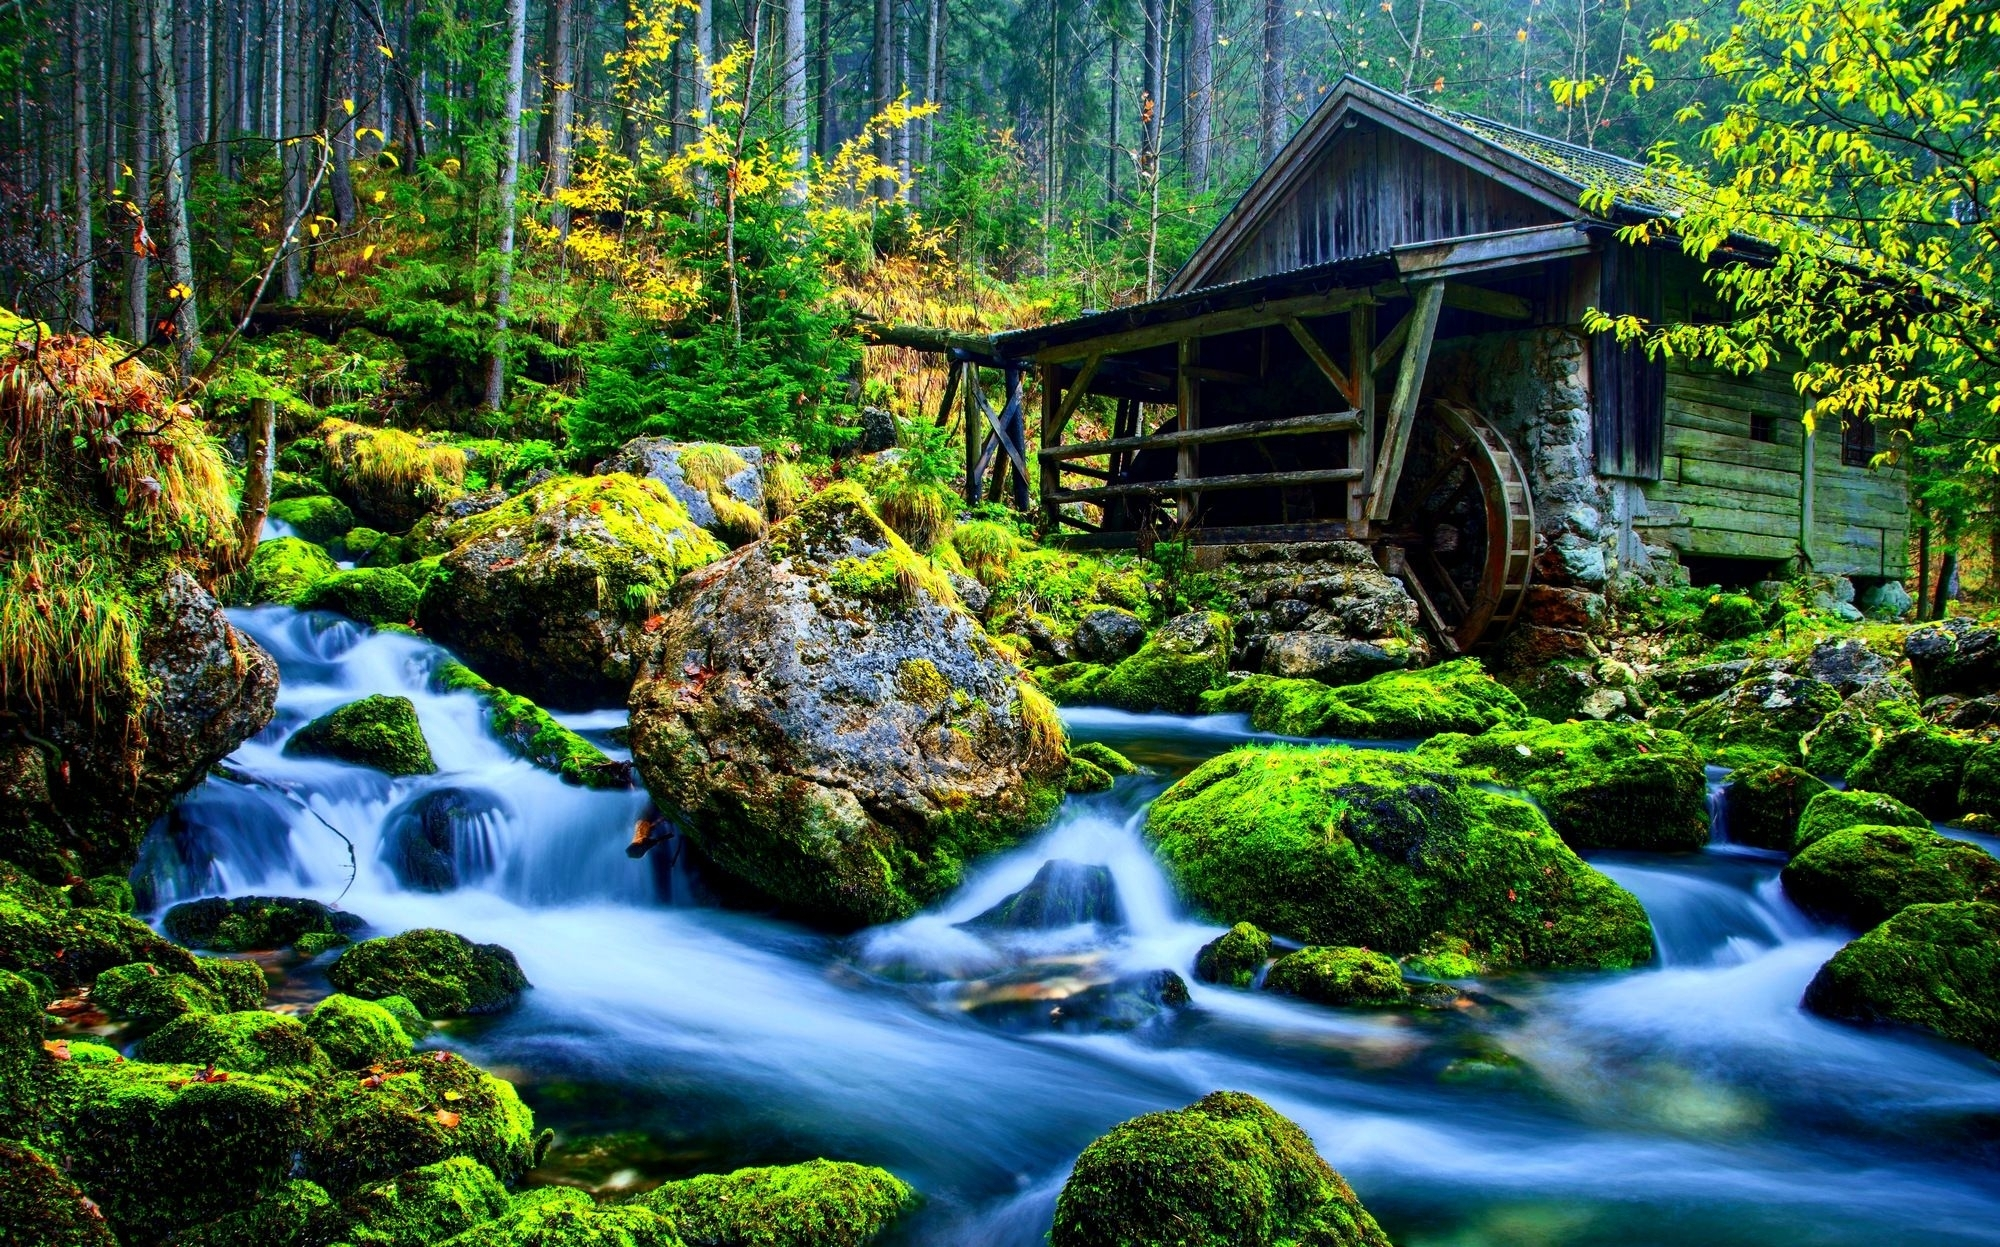 10 Top 3D Nature Wallpapers For Desktop Free Download FULL HD 1080p For PC Desktop